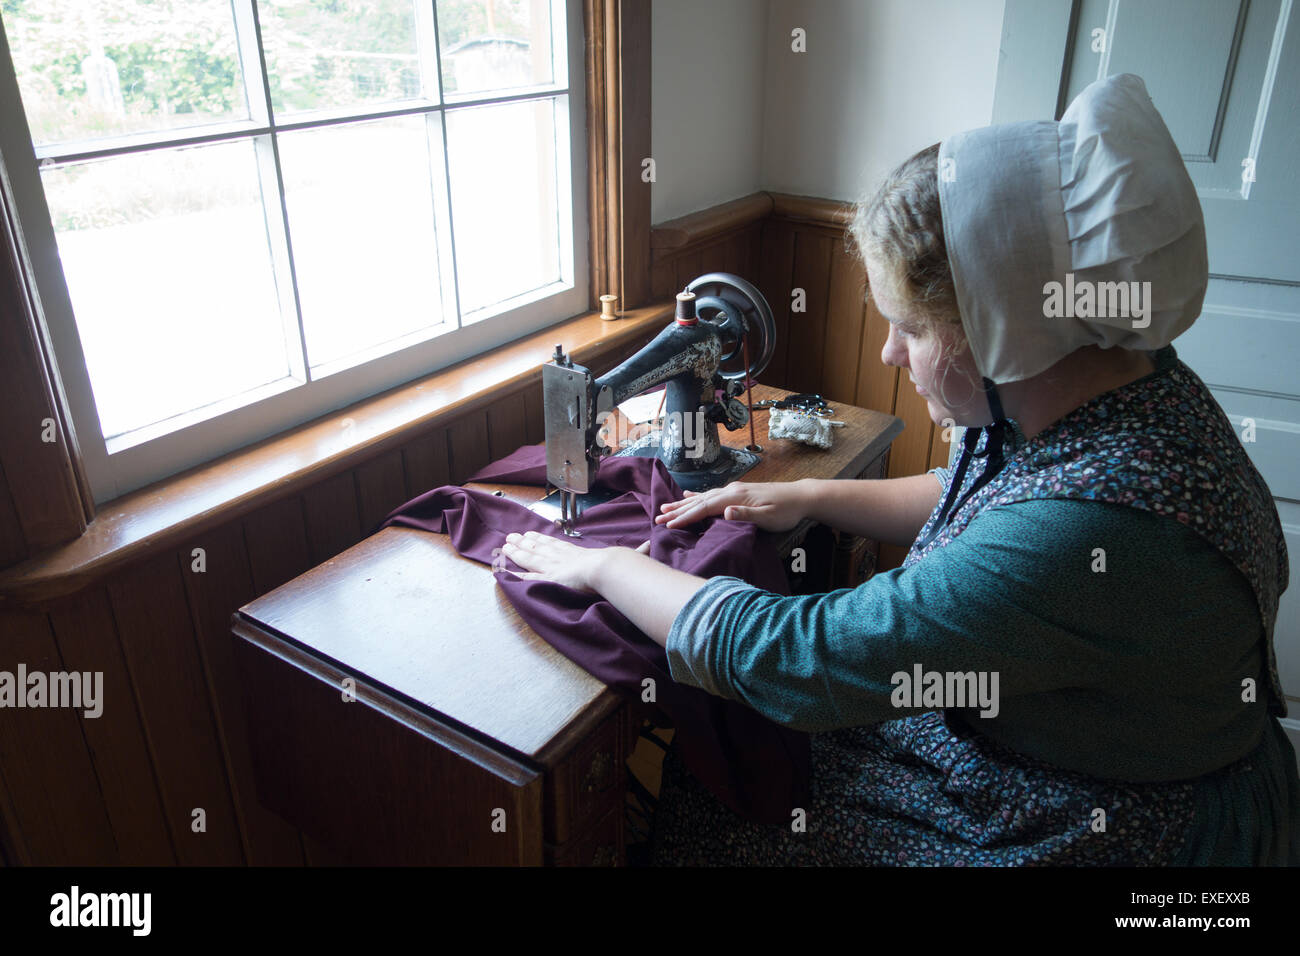 Mennonite Furniture Kitchener Mennonite Woman Stock Photos Mennonite Woman Stock Images Alamy